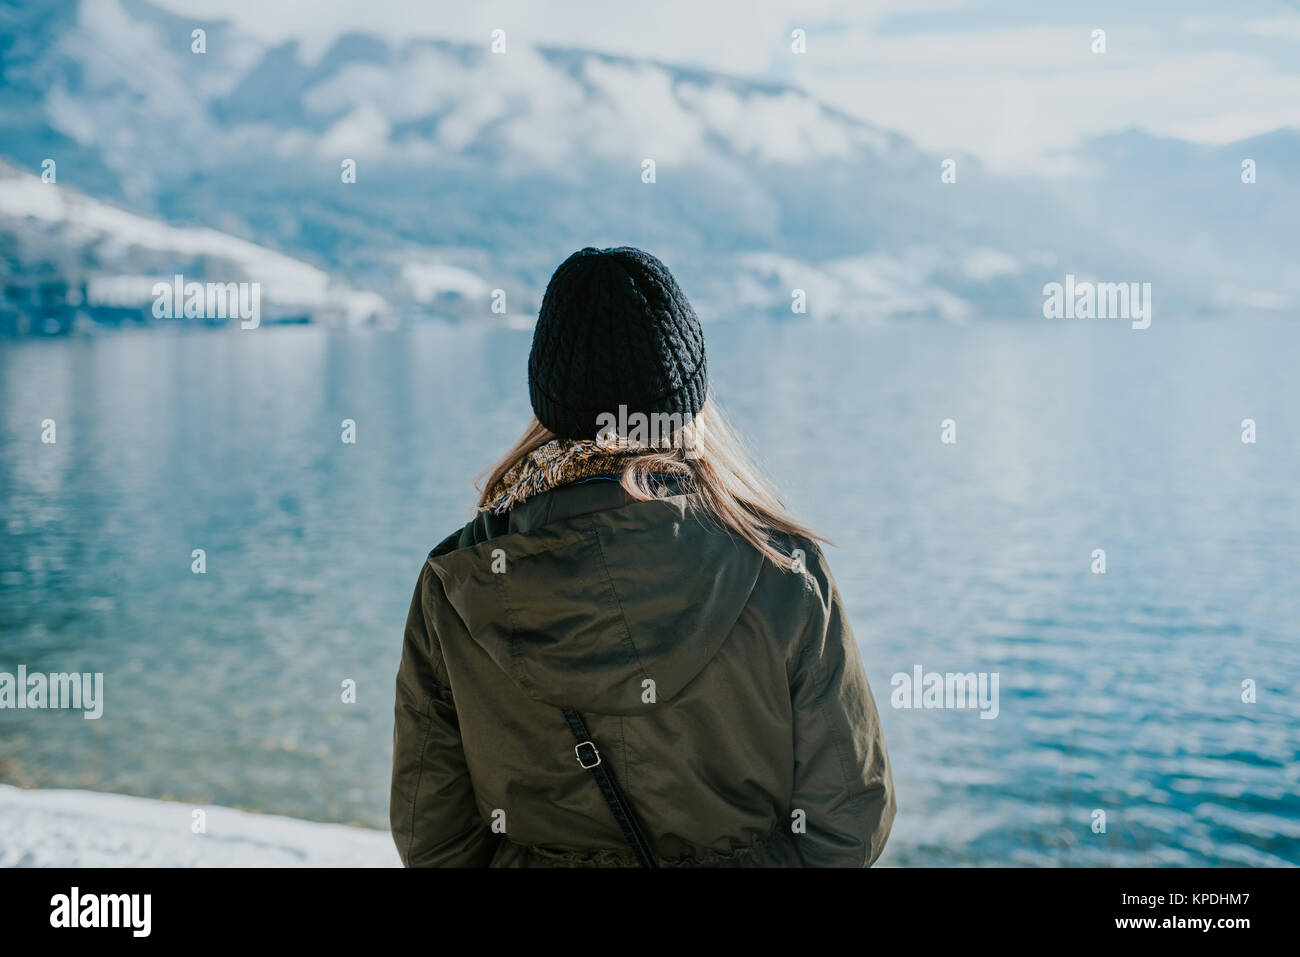 Woman standing on the lakeshore with snowy mountains in the background - Stock Image